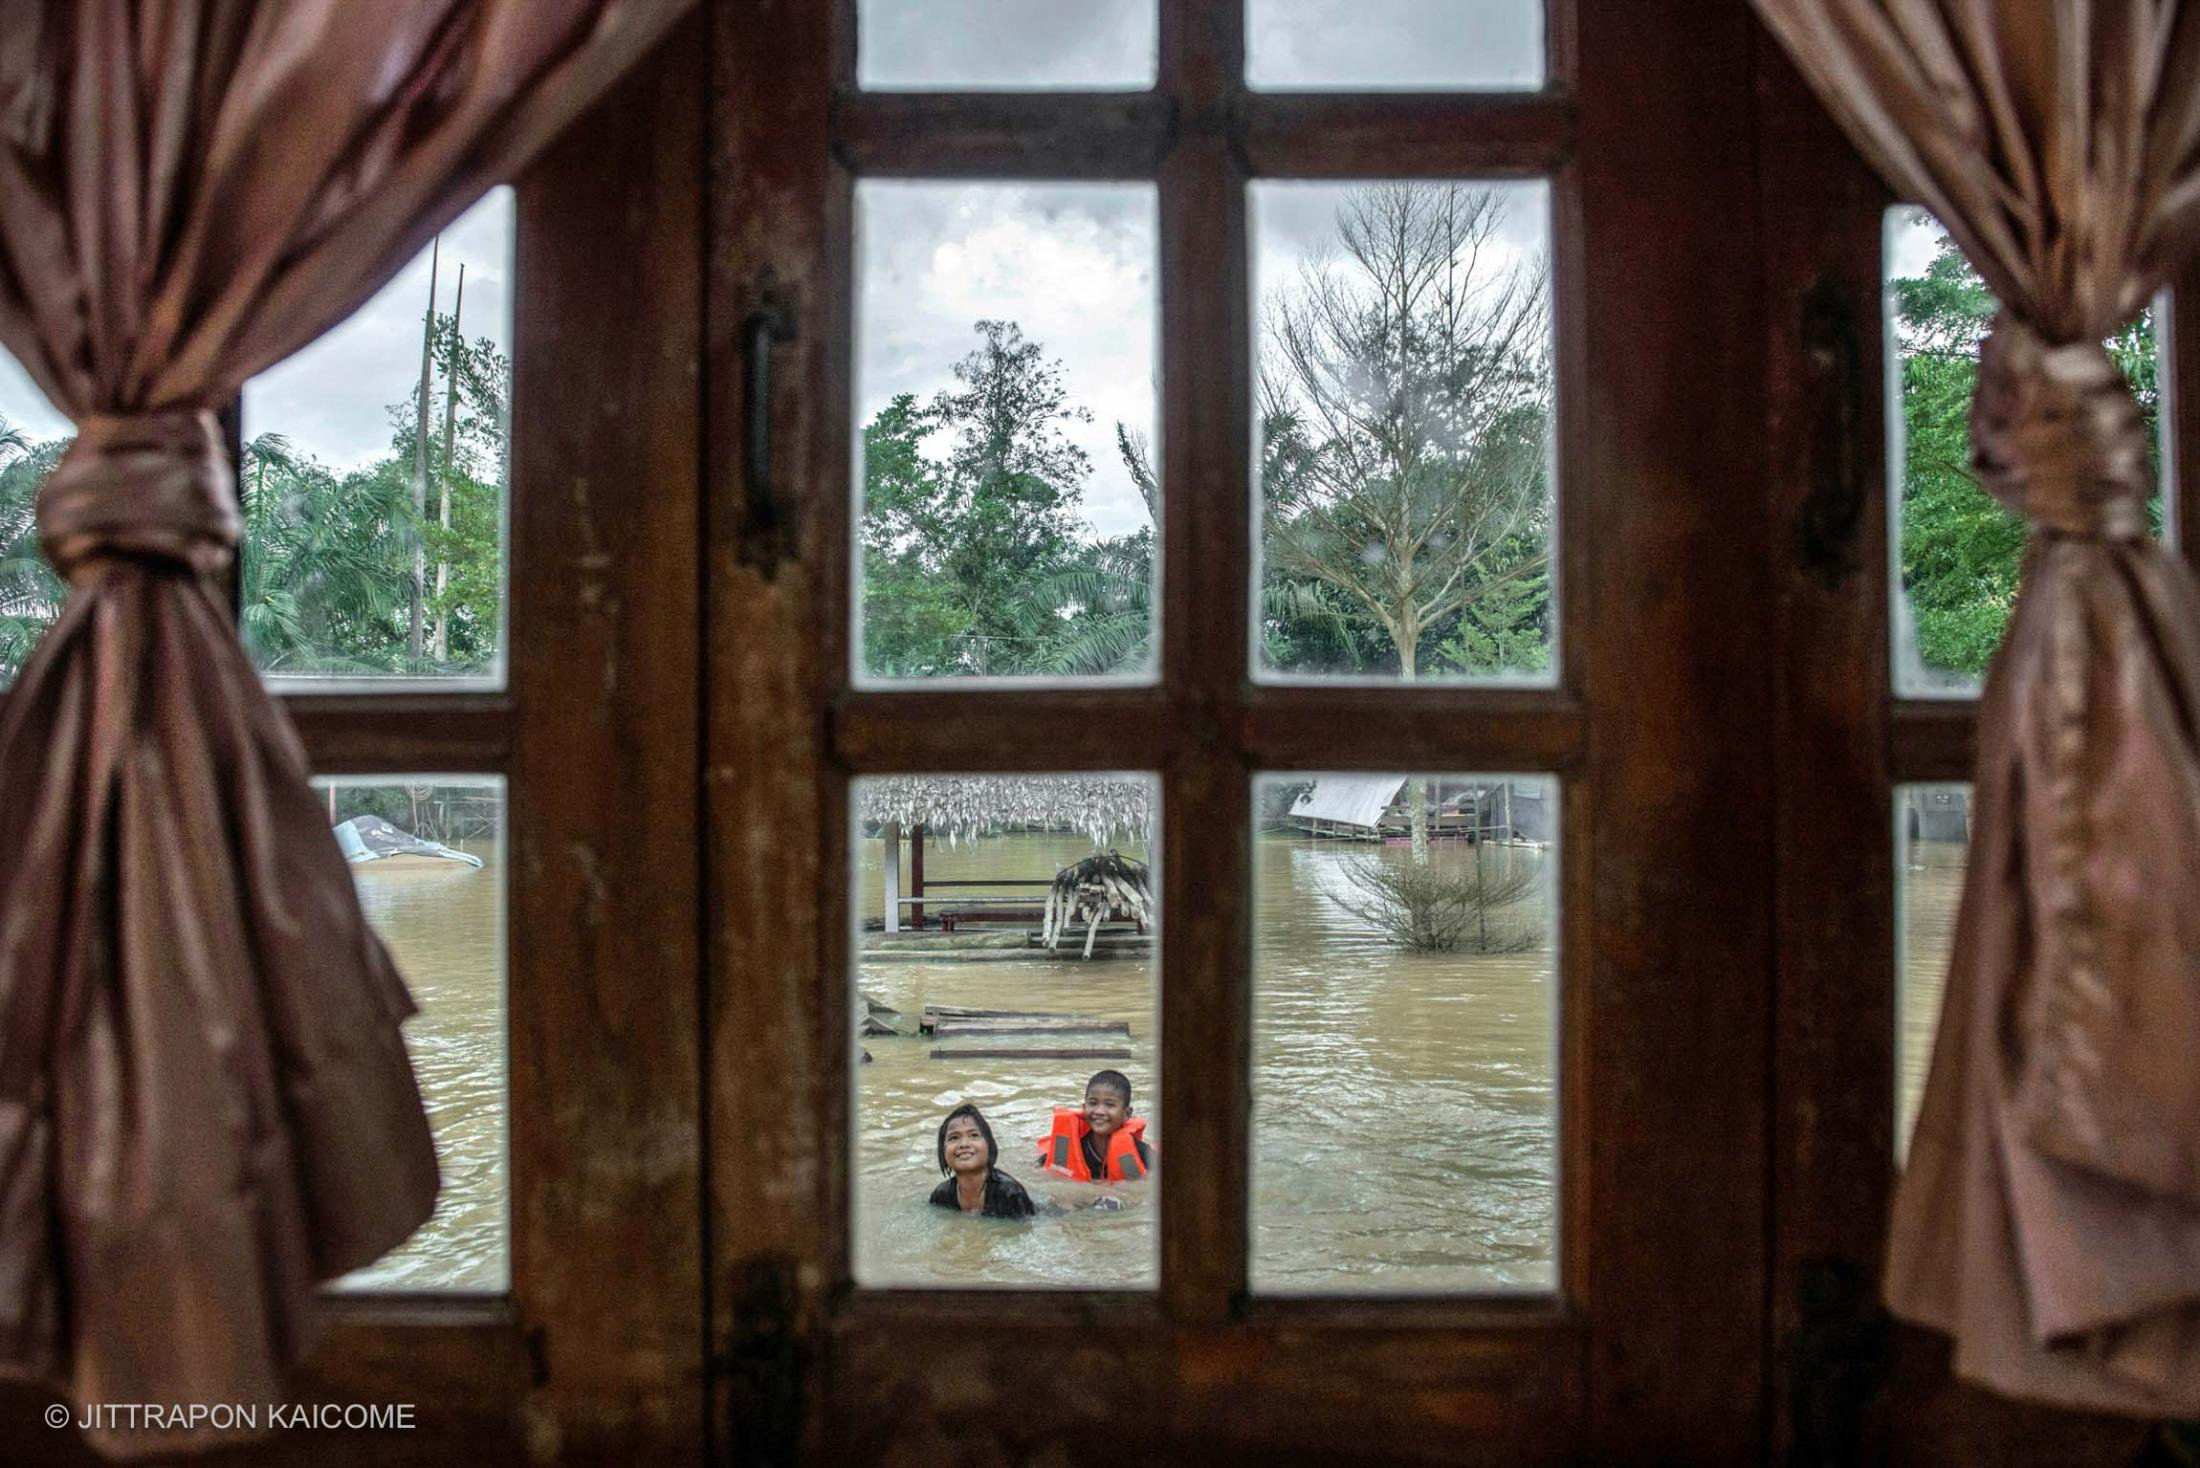 Southern Thailand is hit by Unusual flooding resulted in unseasonal rainfall more than 3 times in January, Civilians in Surat Thani is living with high rise flooding for many weeks. January 18, 2017.